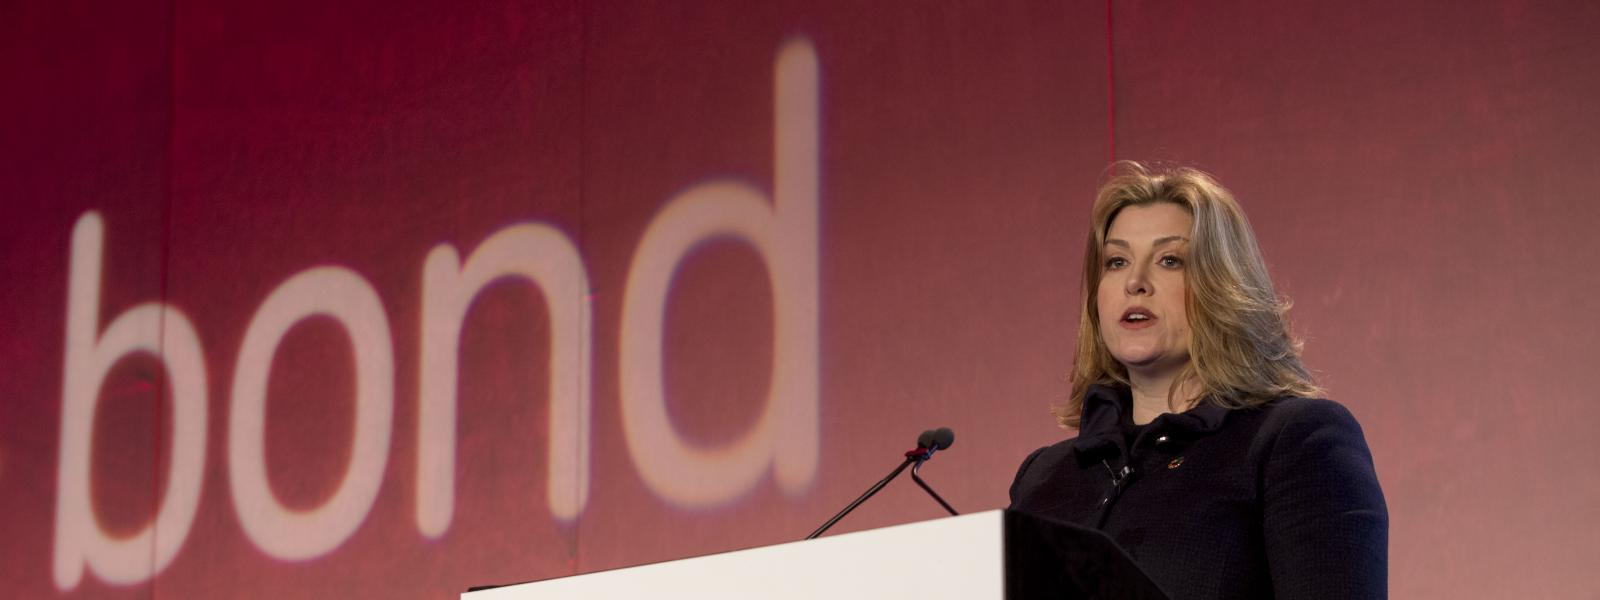 Penny Mordaunt speaking at Bond Conference 2018